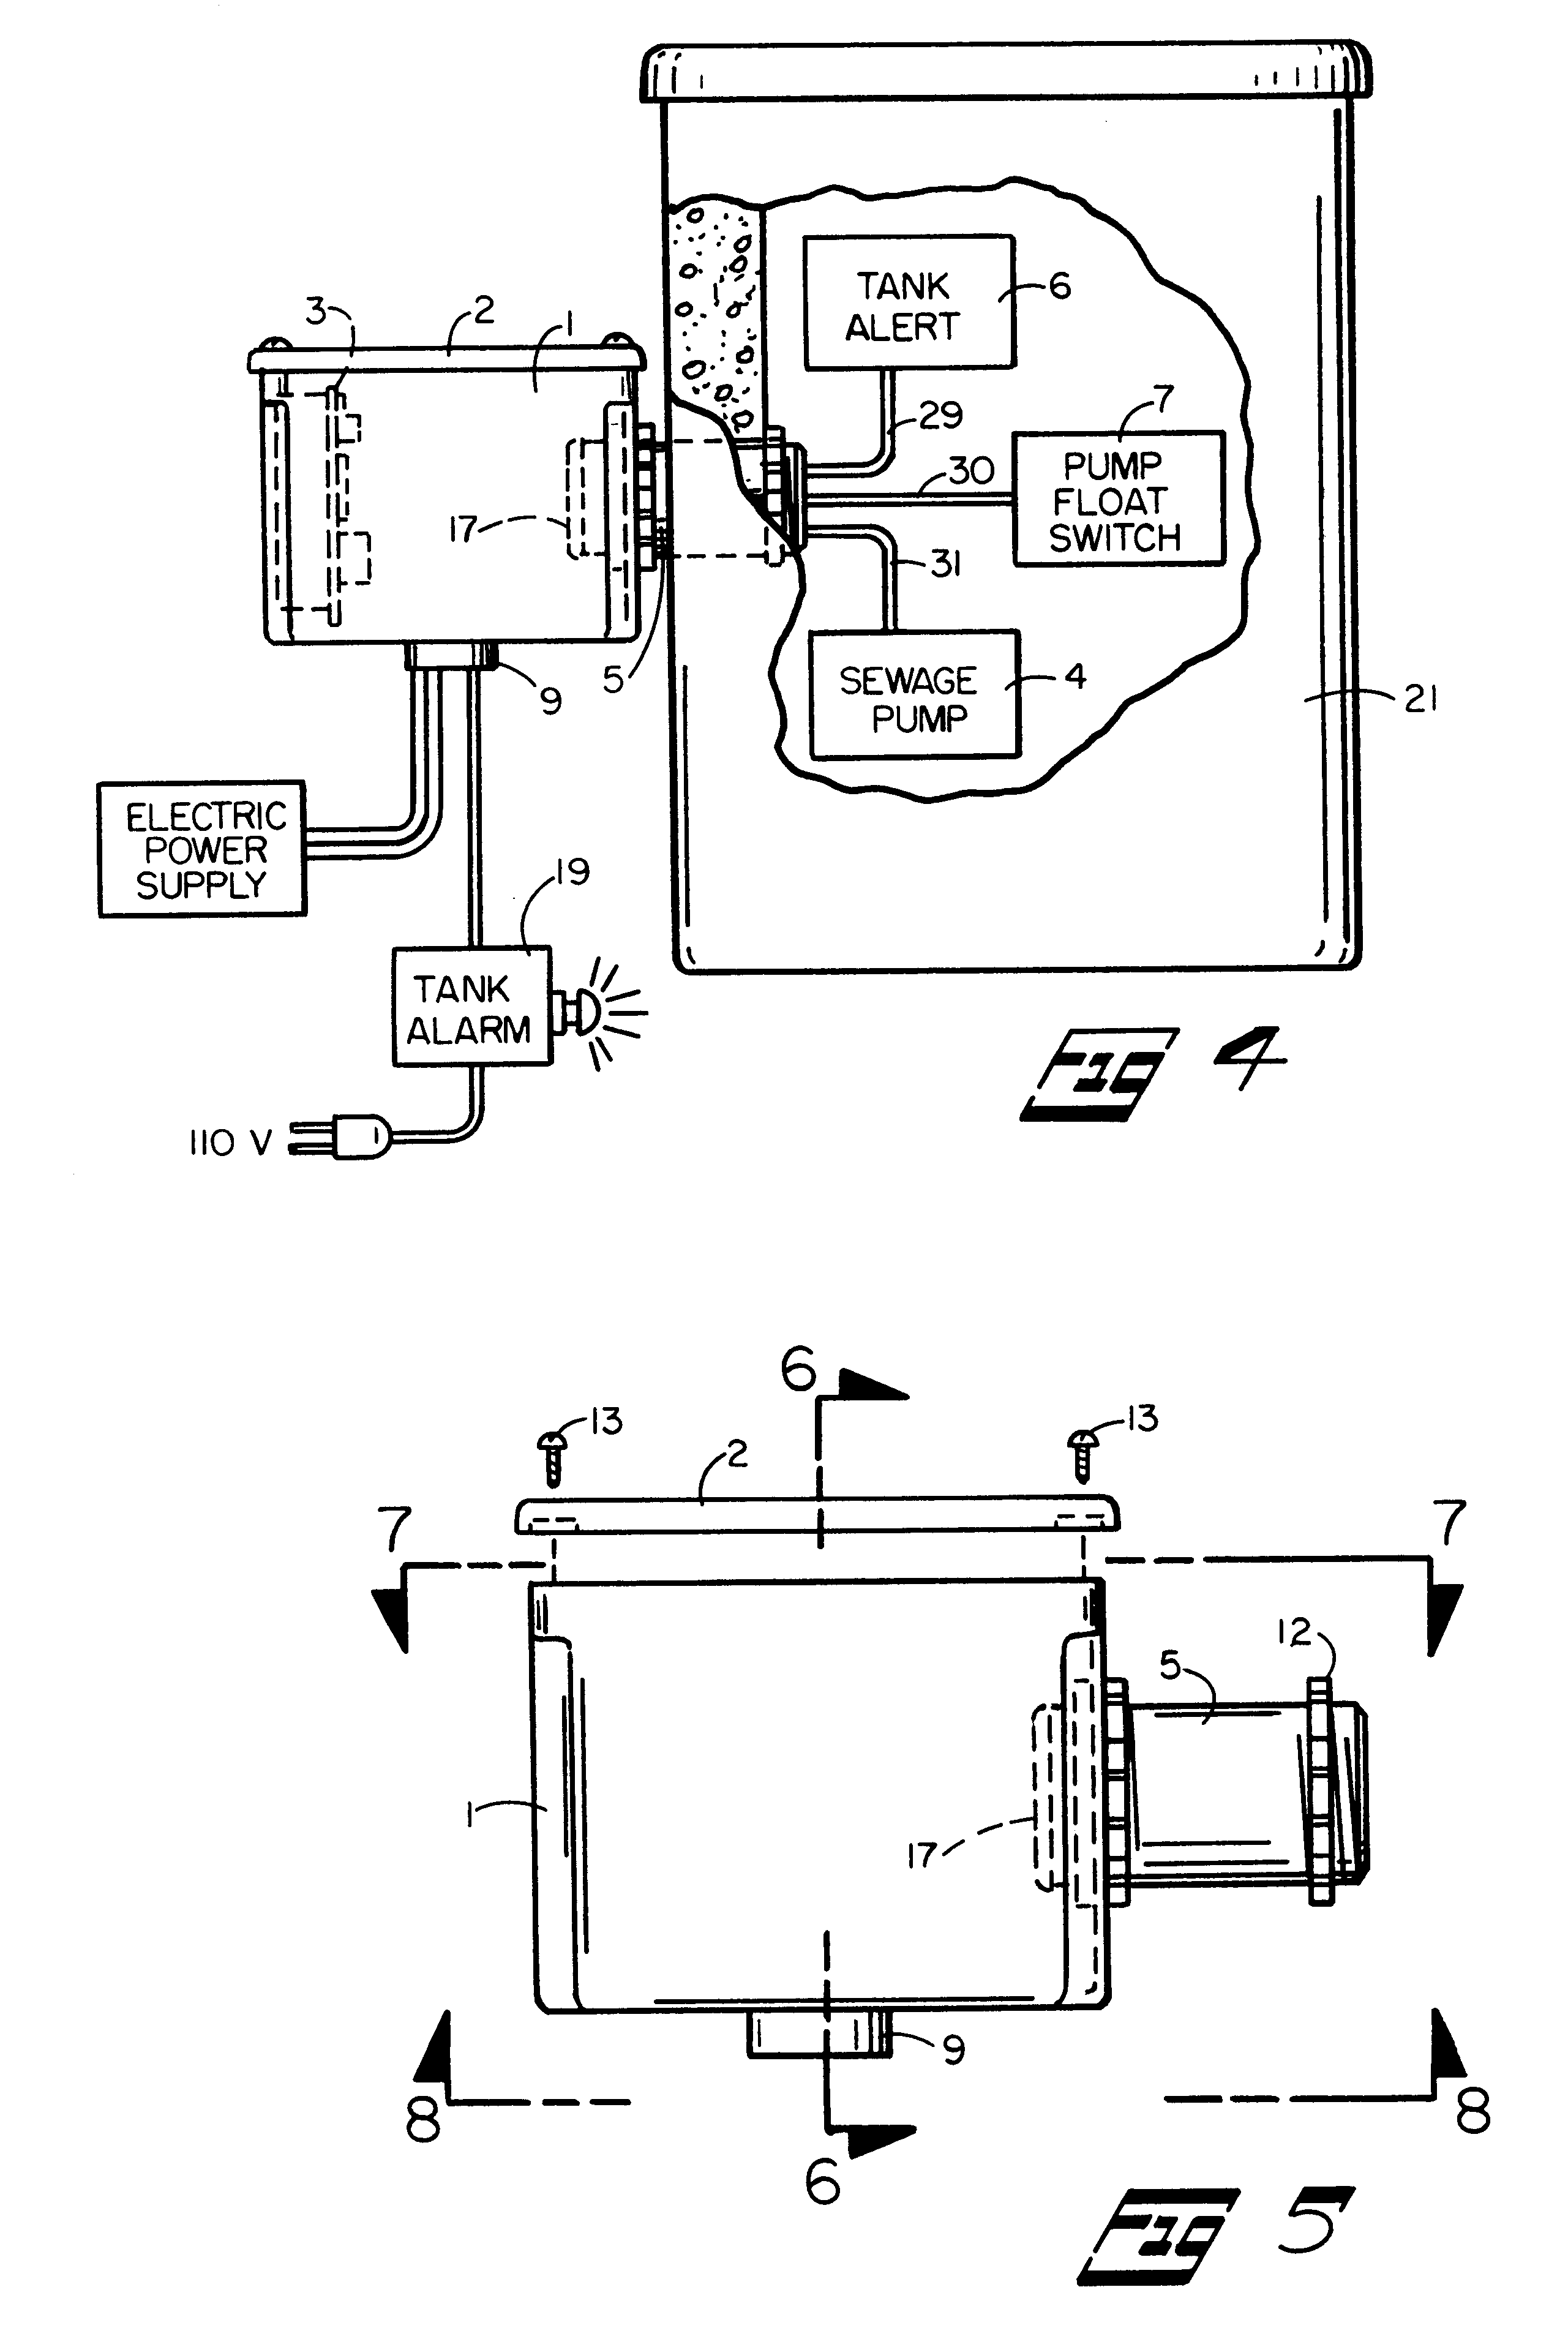 Septic Pump Wiring Diagram : Patent us housing and electric connection panel